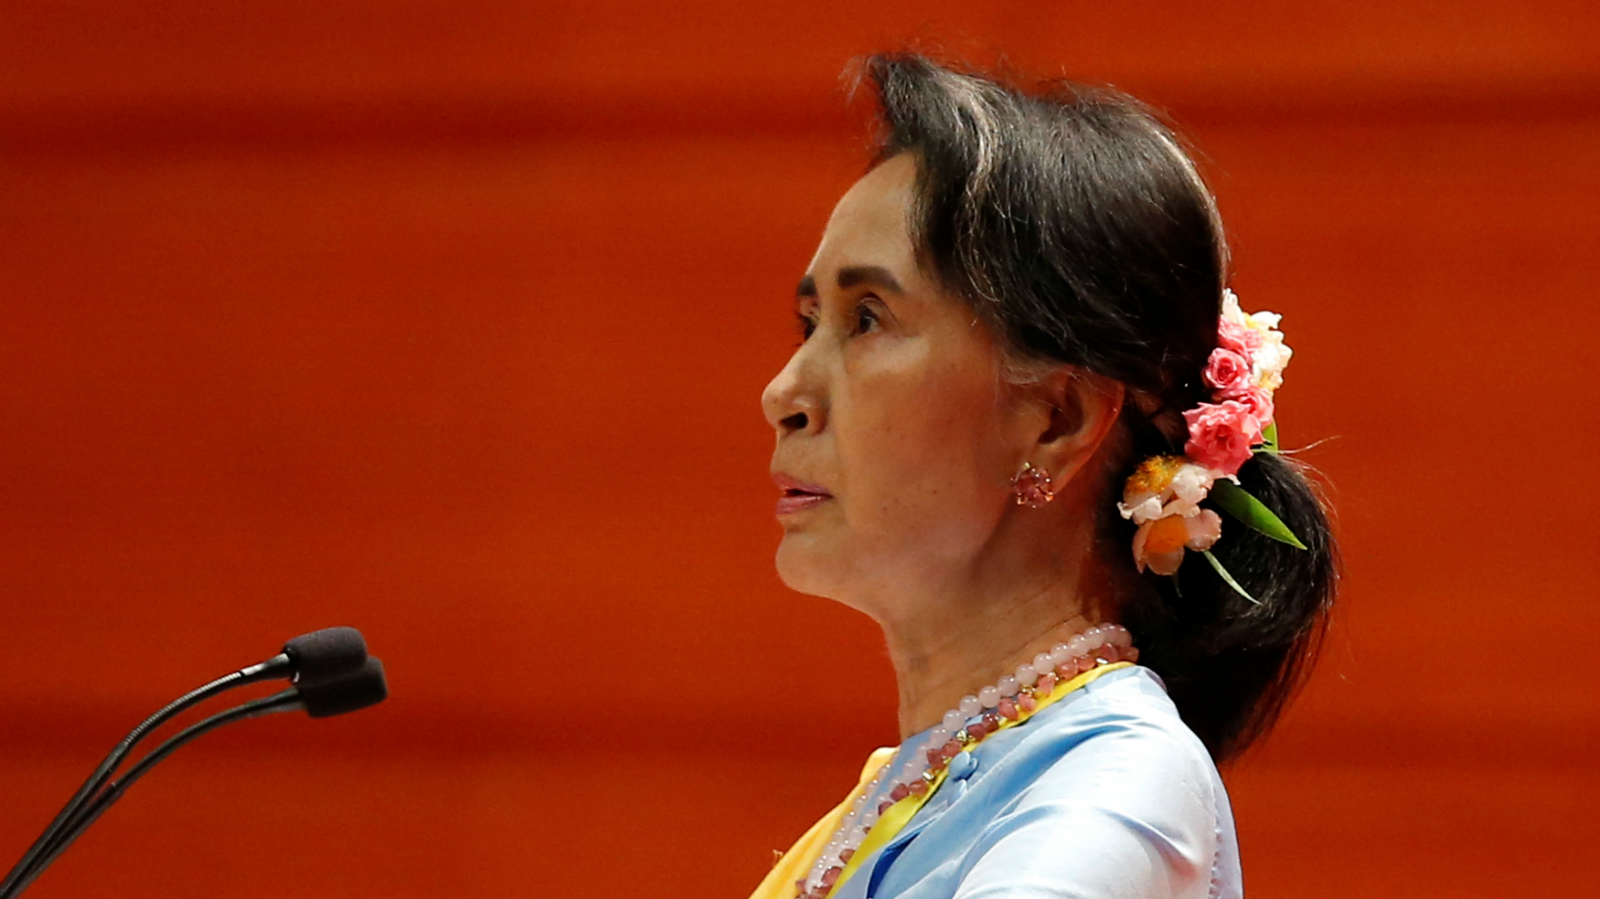 In defense of Aung San Suu Kyi: constrained by Myanmar's military ...